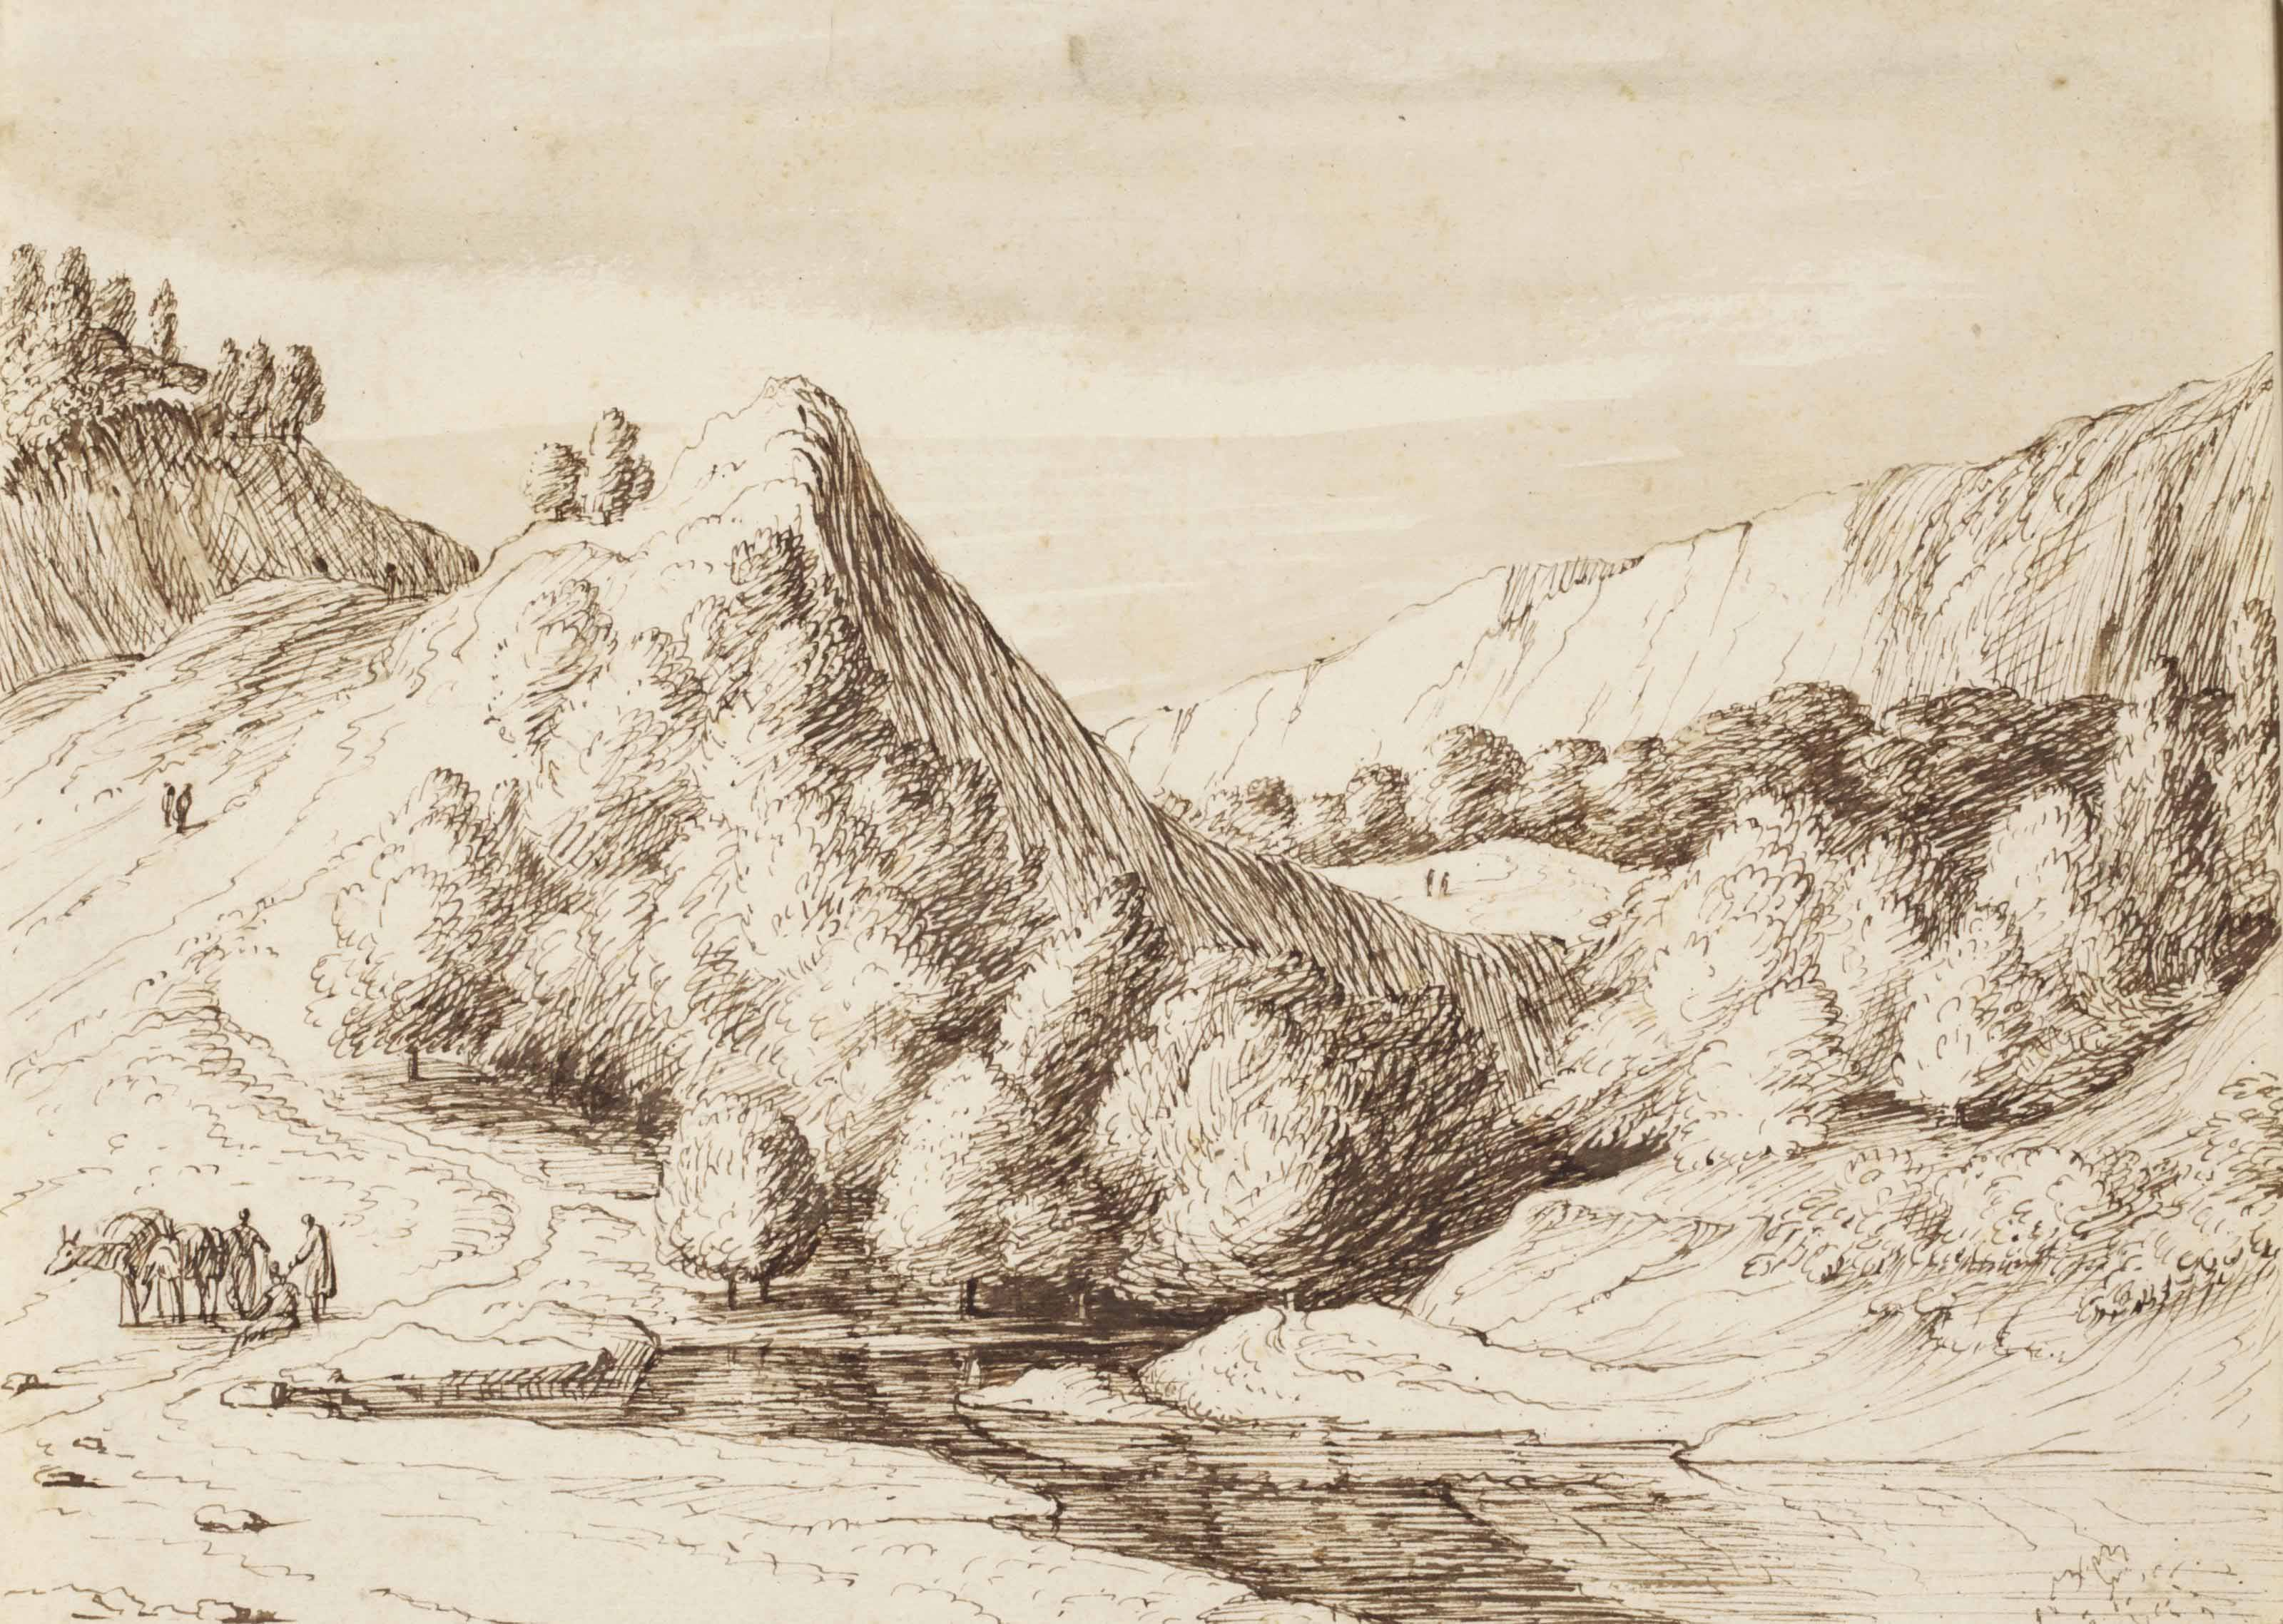 A mountainous landscape with travellers by a river